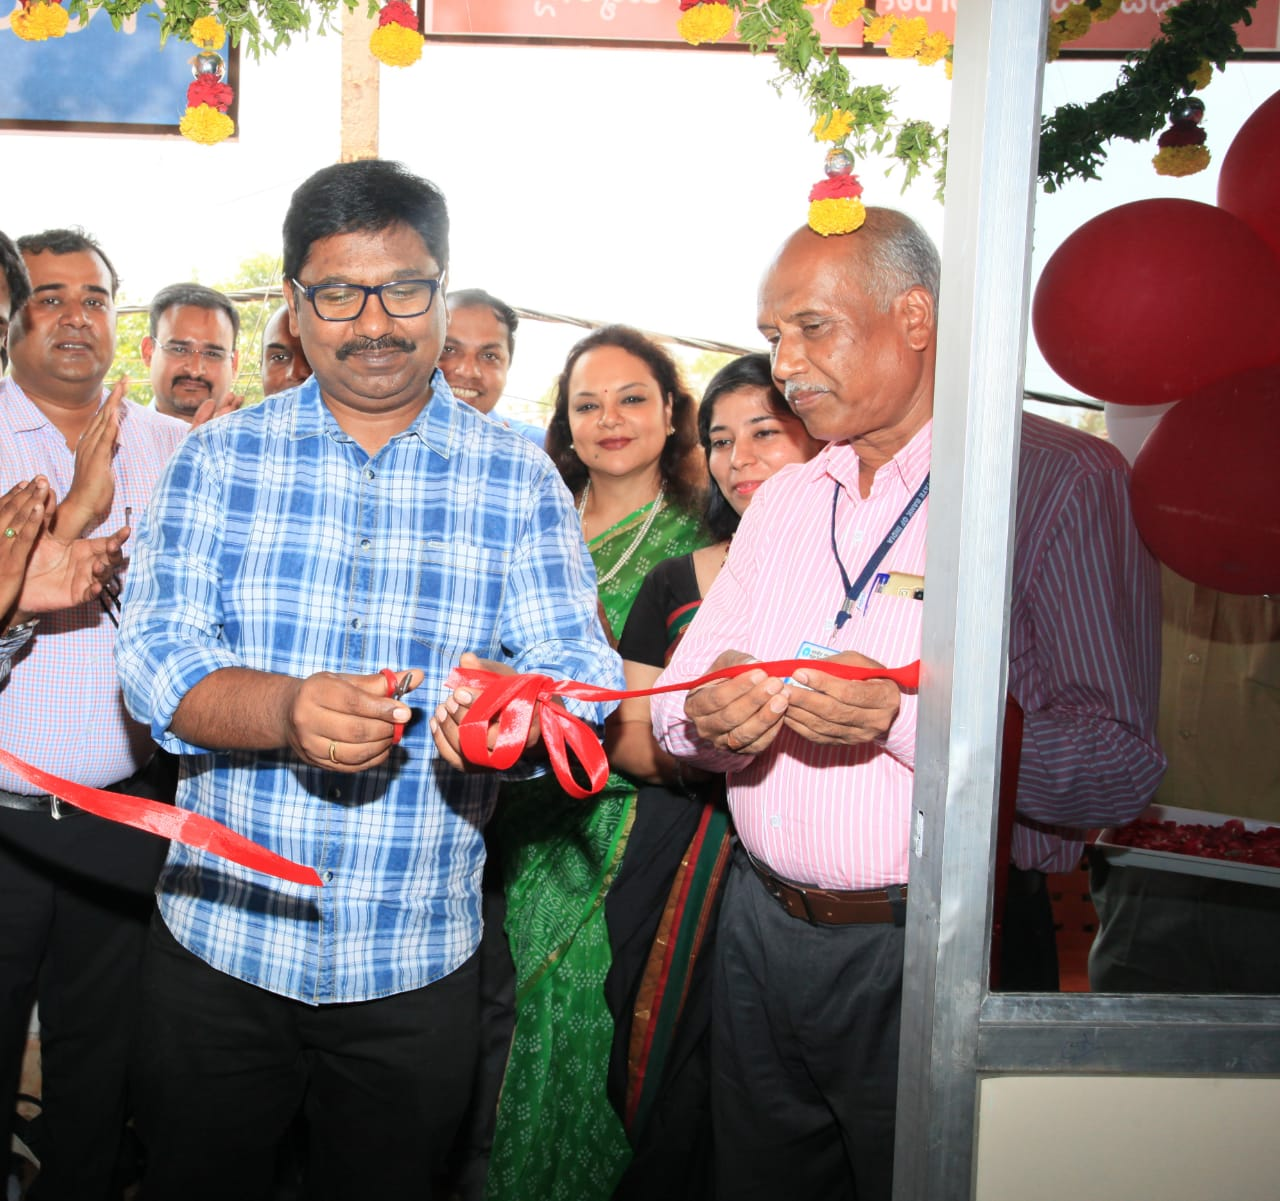 bidar office inauguration karnataka